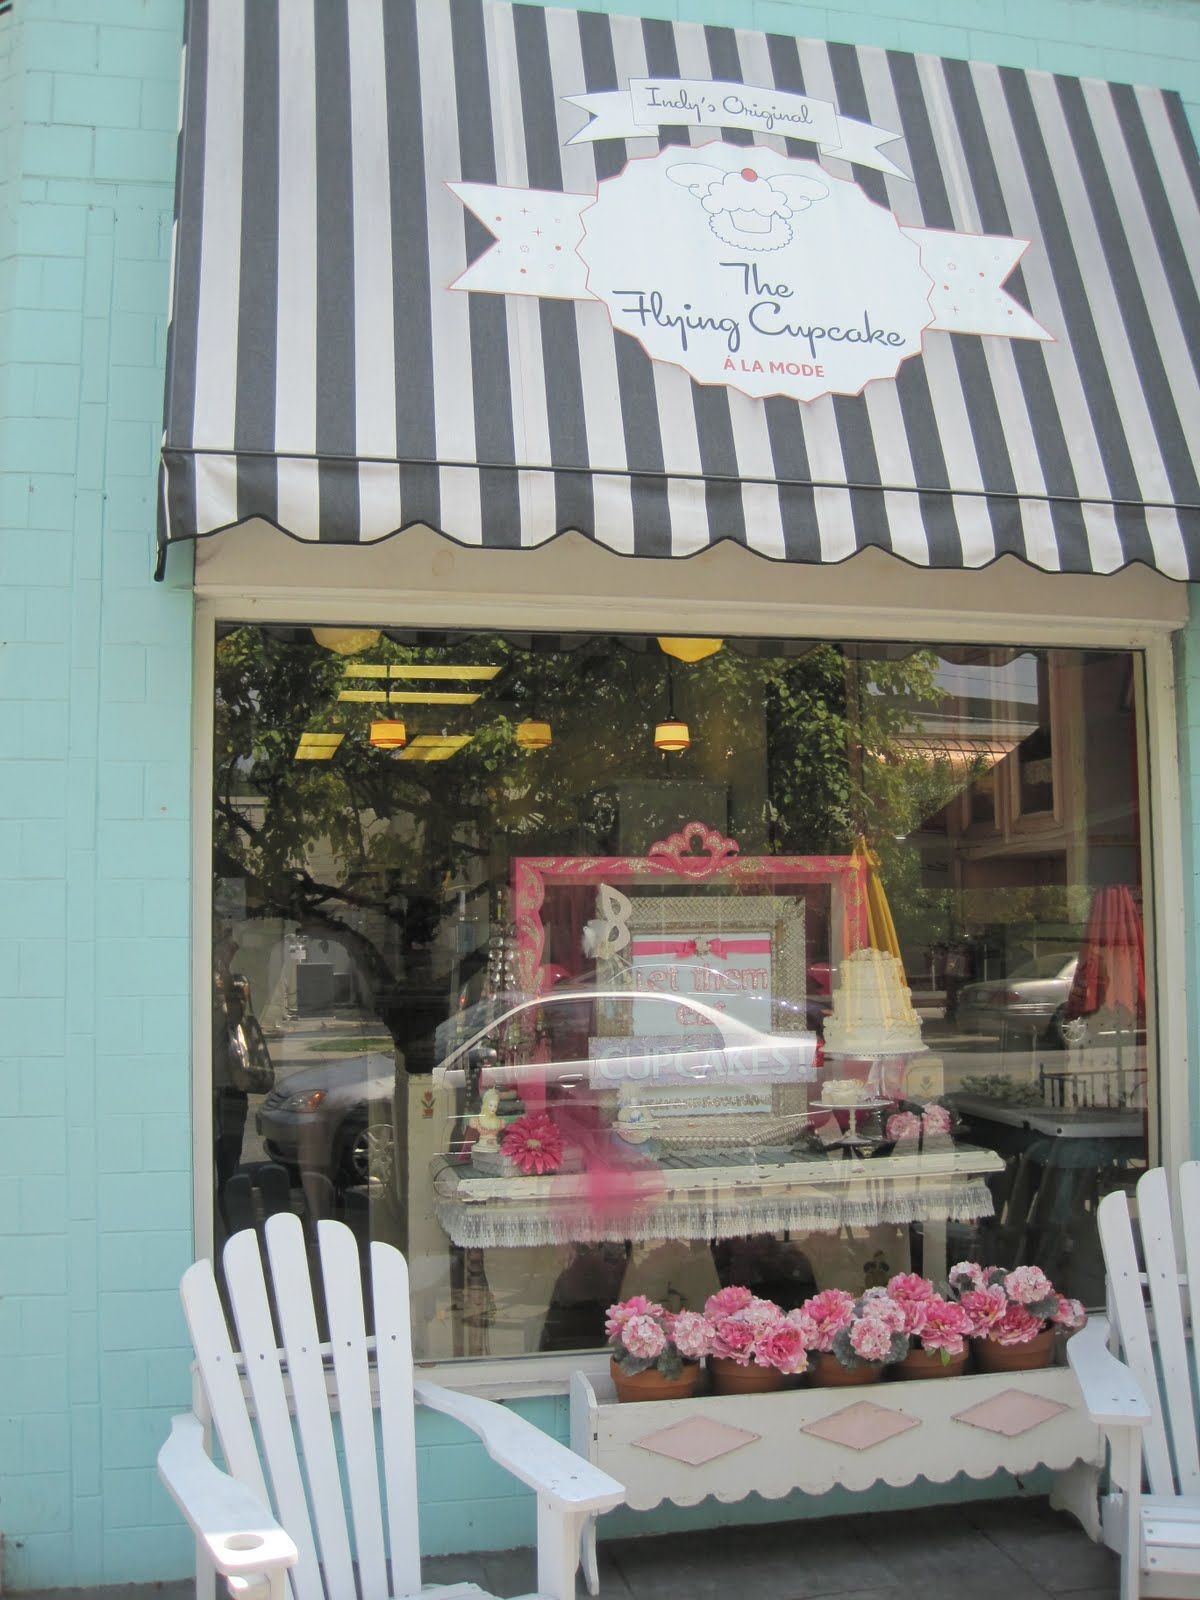 Love the striped awning and use of color. The white chairs and flowers really add some character to.